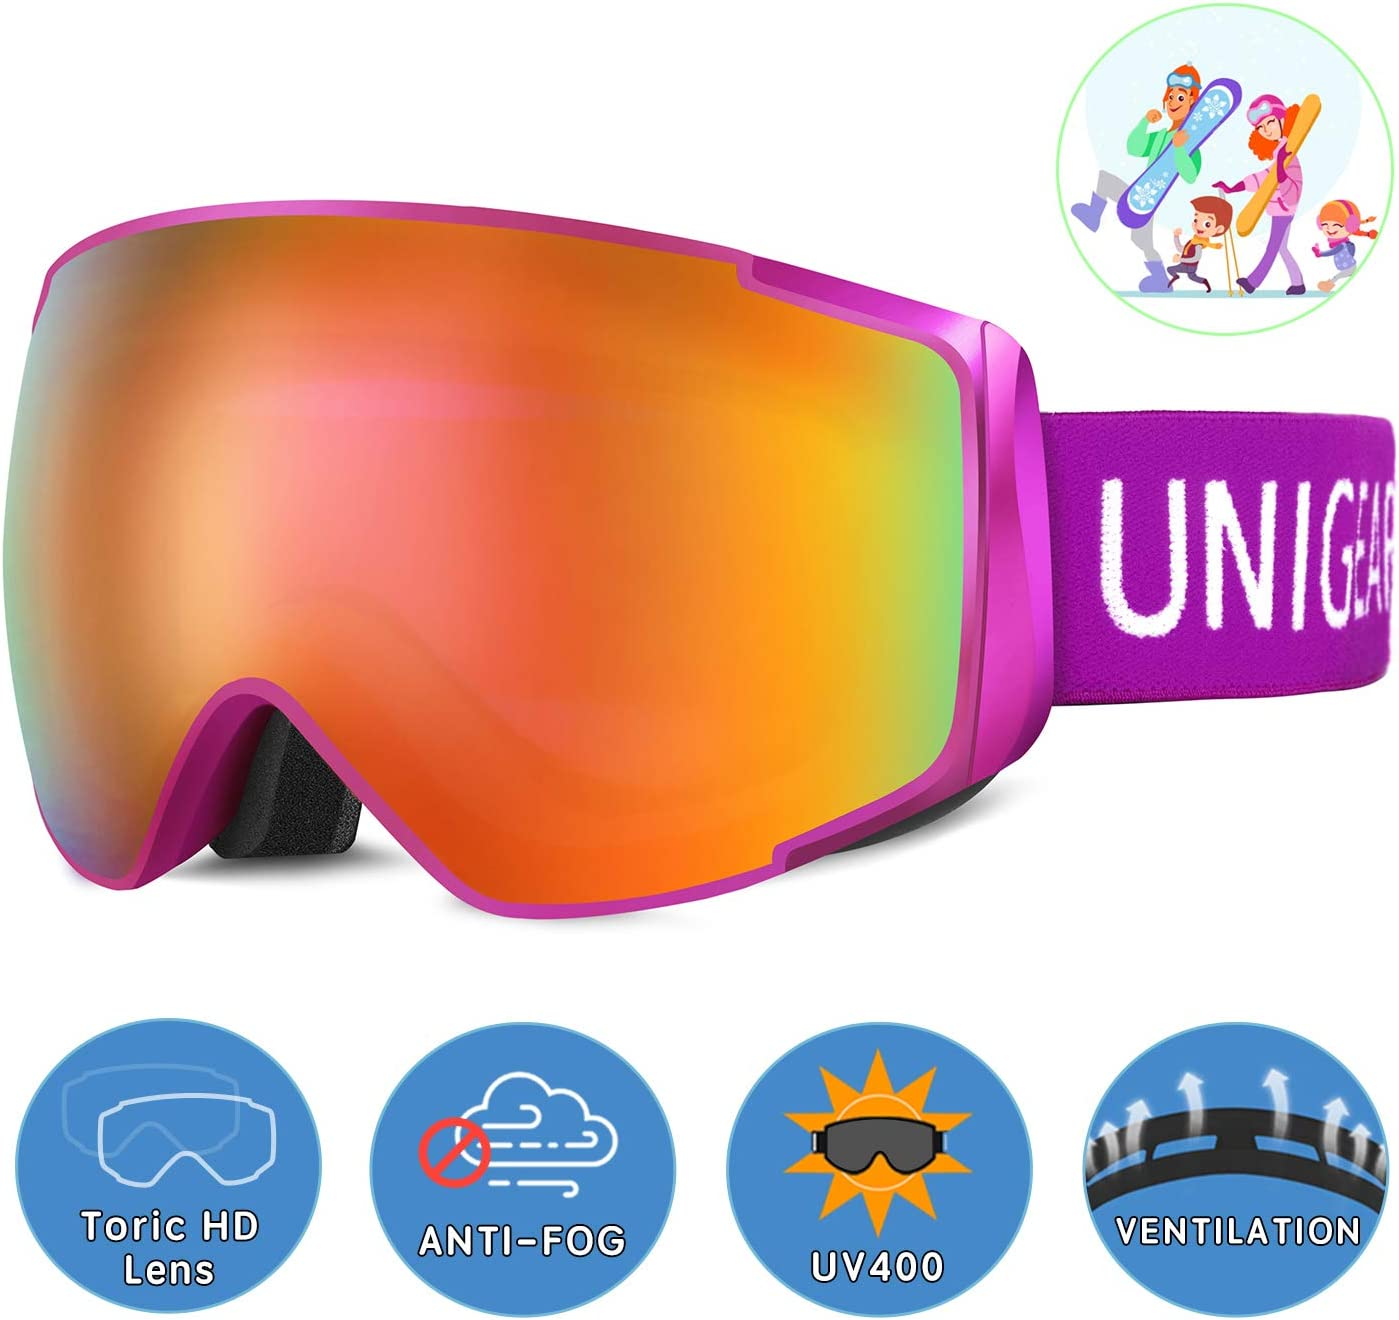 Unigear Skido X2 Ski Goggles, Toric Dual Lens Snowboard Snow Goggles for Kids, Men and Women – OTG 100 UV Protection